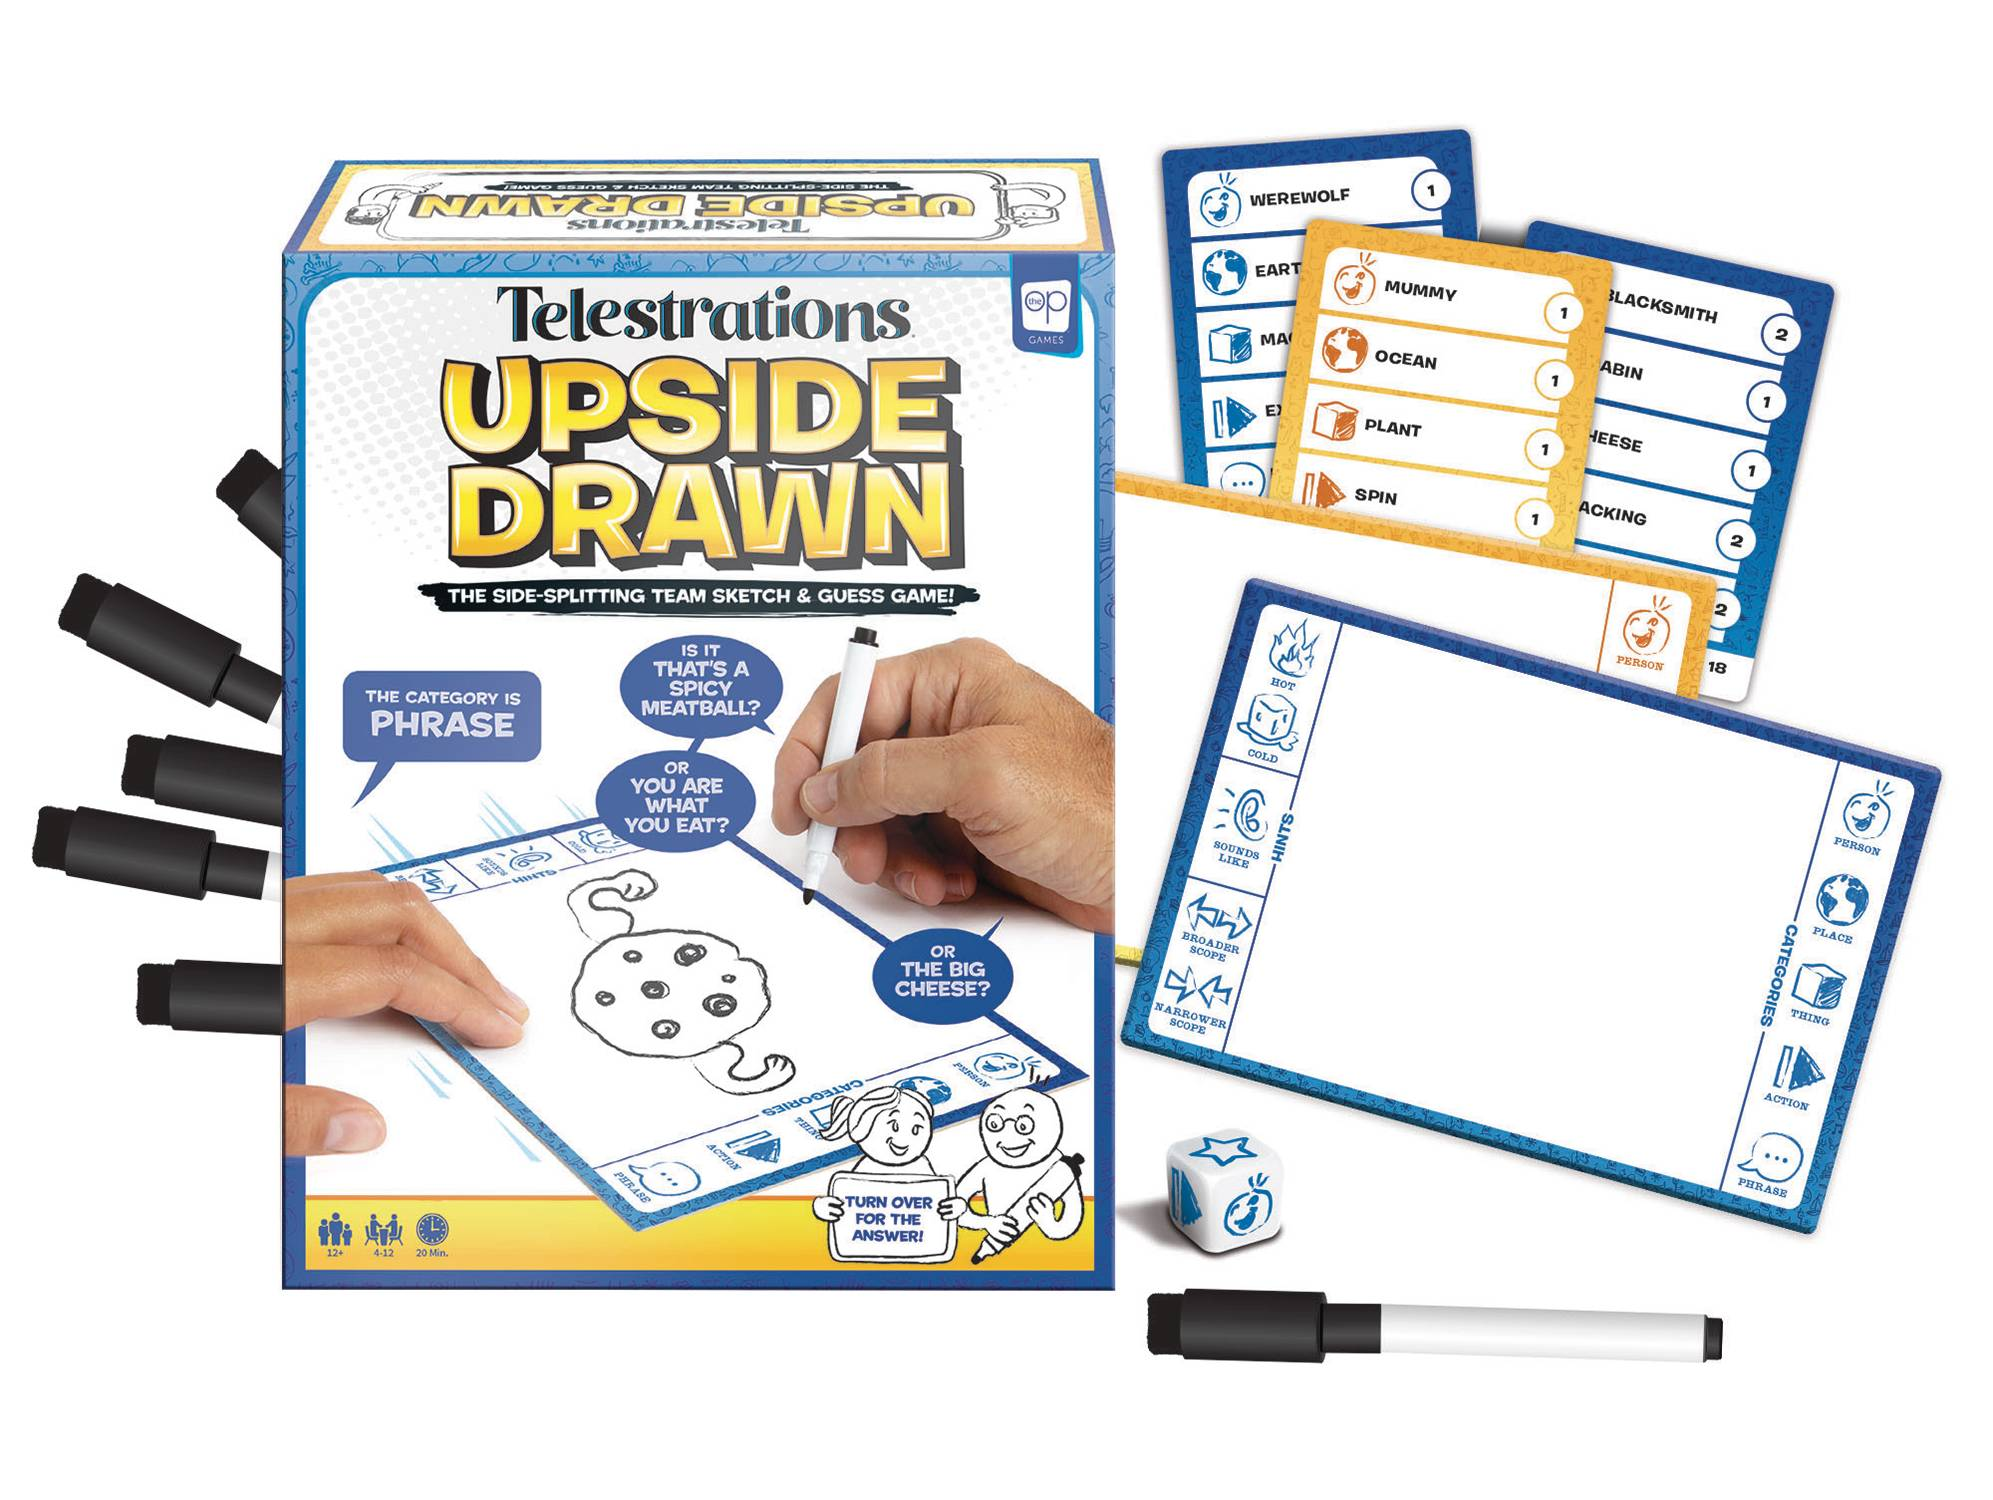 TELESTRATIONS UPSIDE DRAWN BOARDGAME